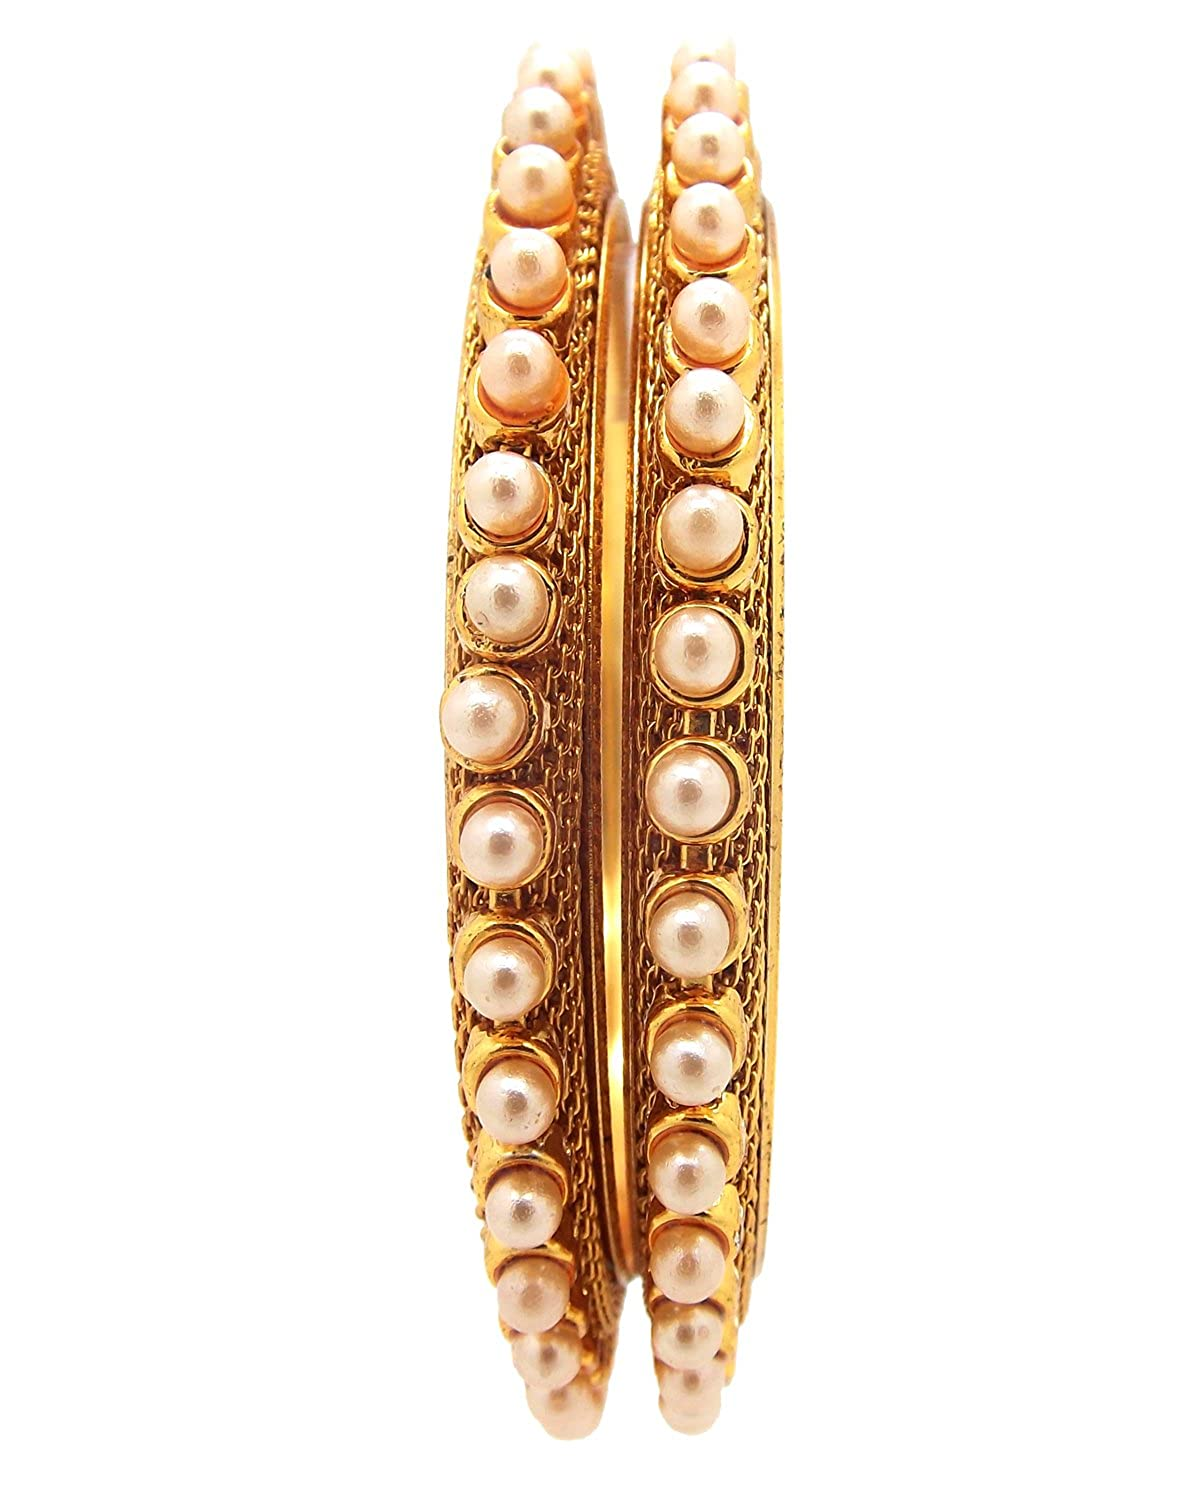 Biyu Pearl Collection CZ White Stone Gold Plated 2pc Bangles for Womens Girls